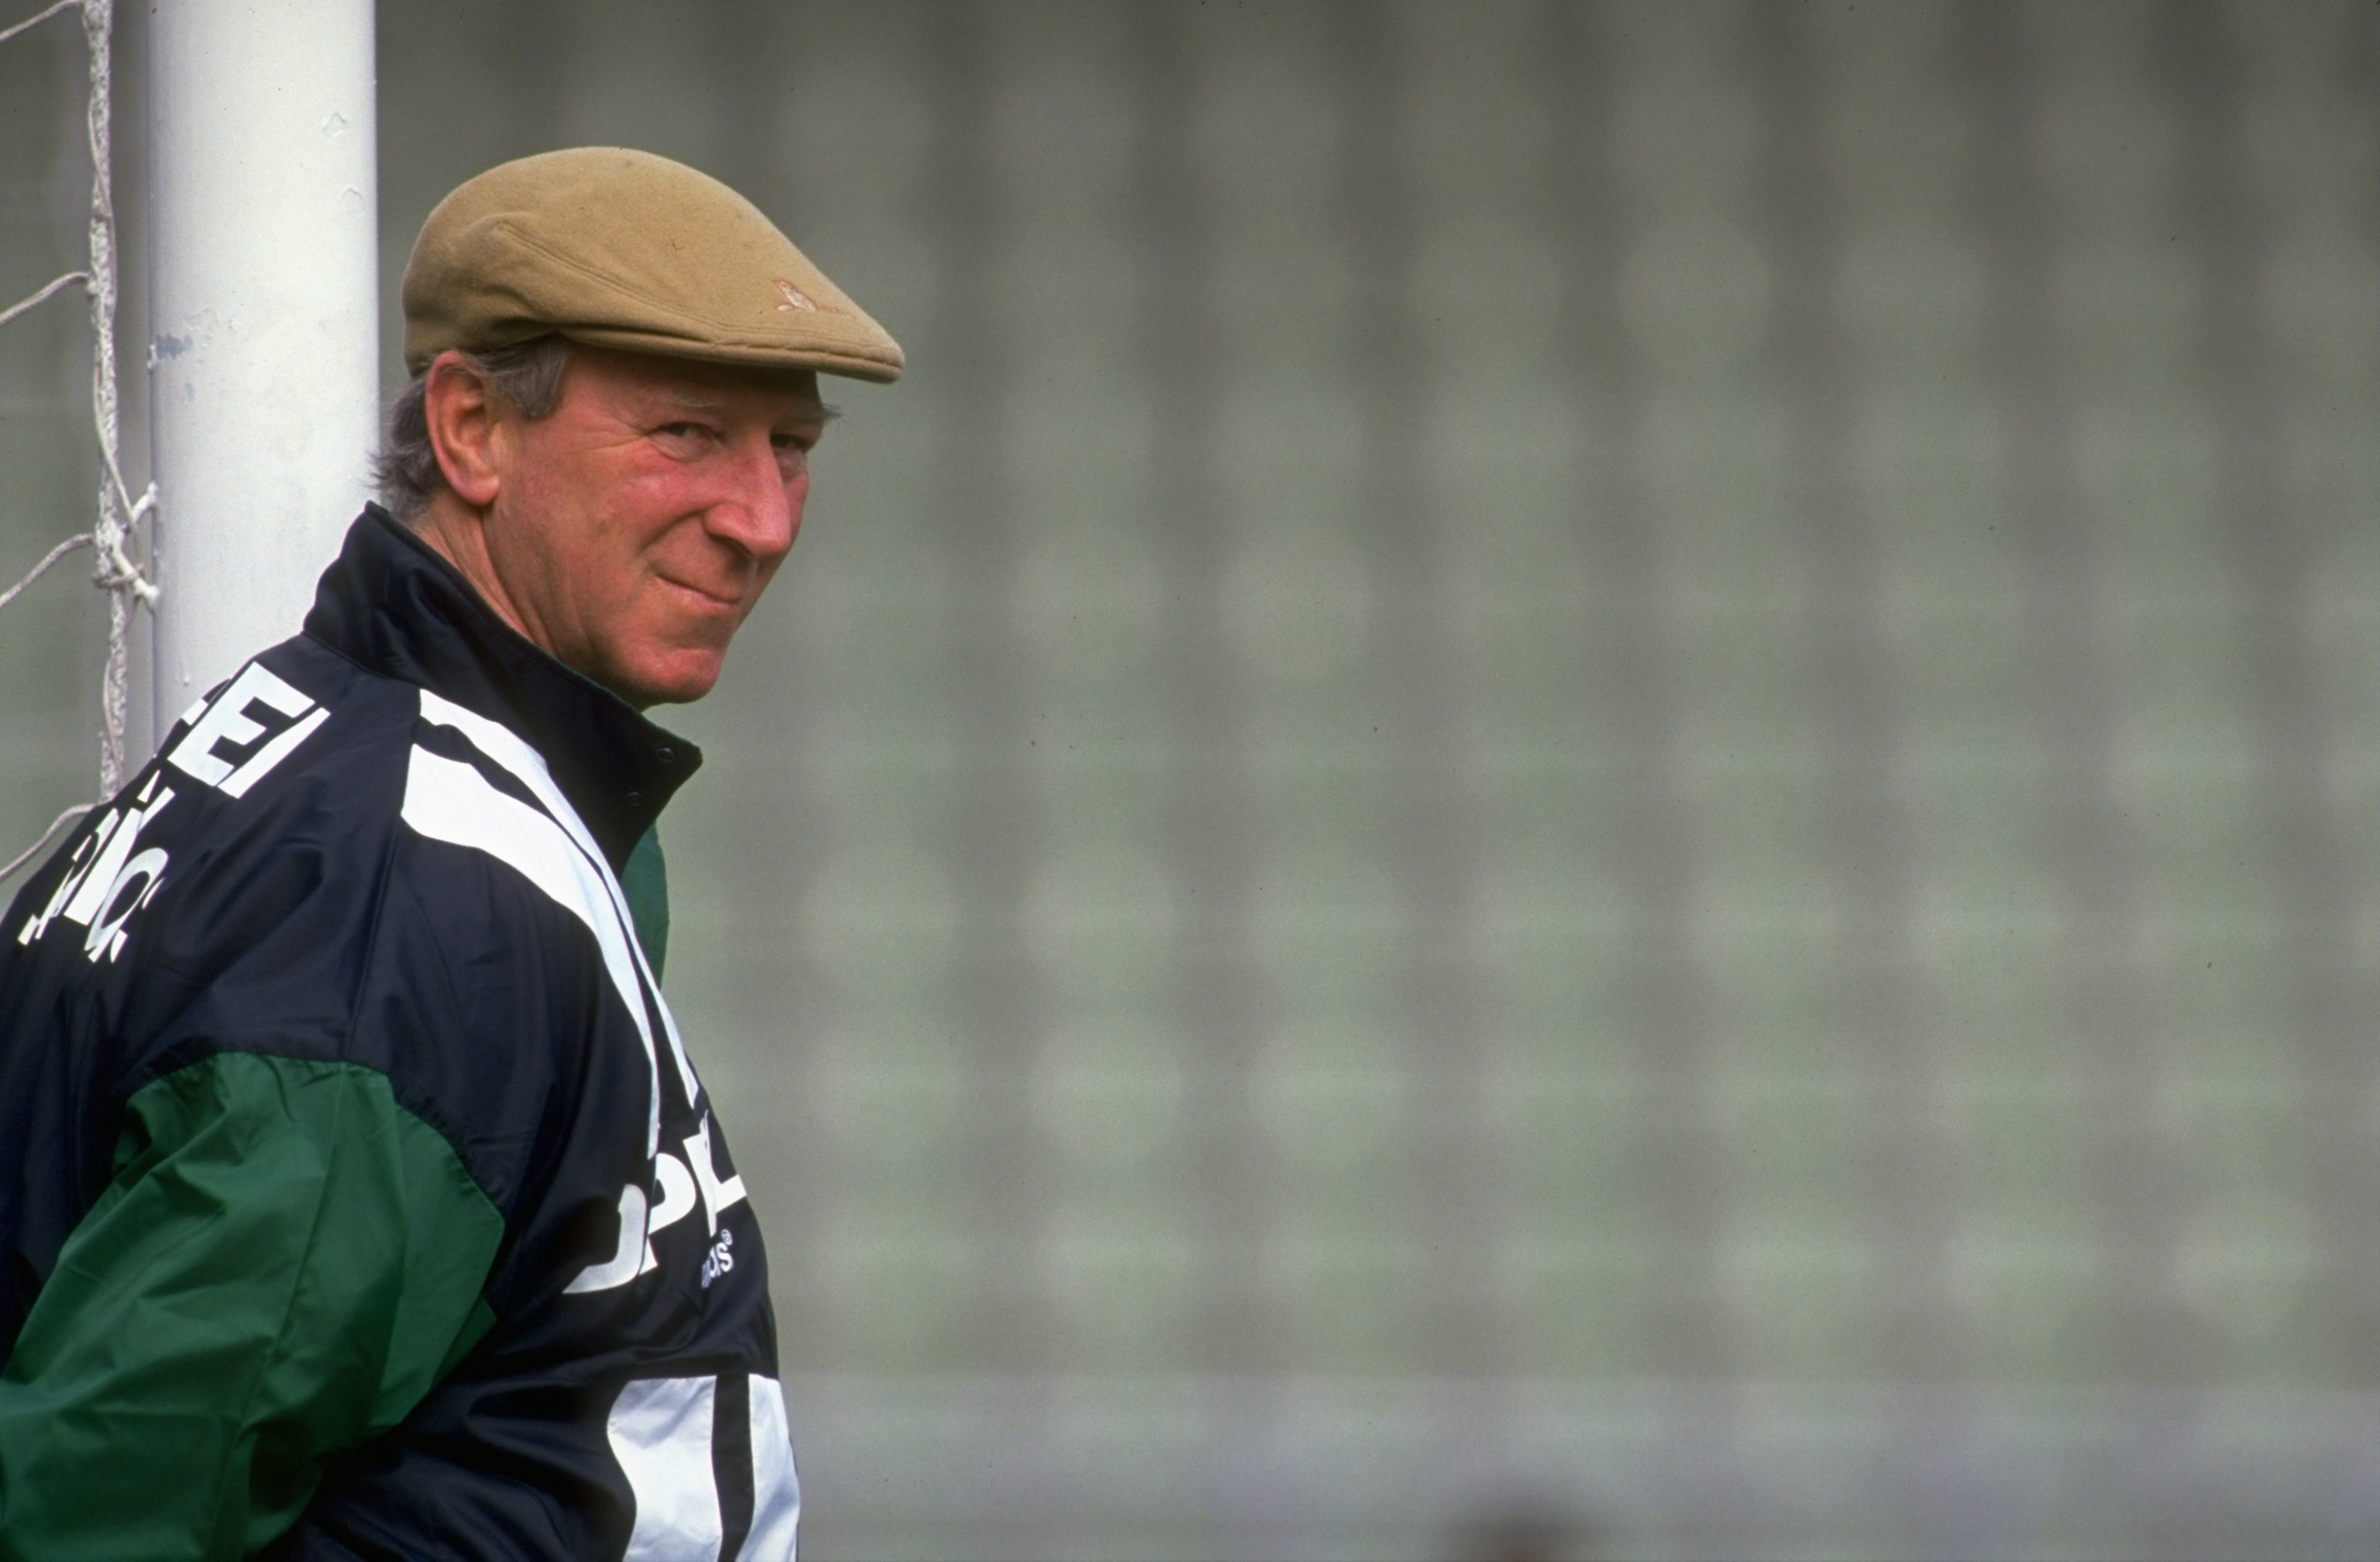 Jack Charlton, English World Cup-winning footballer, dies aged 85